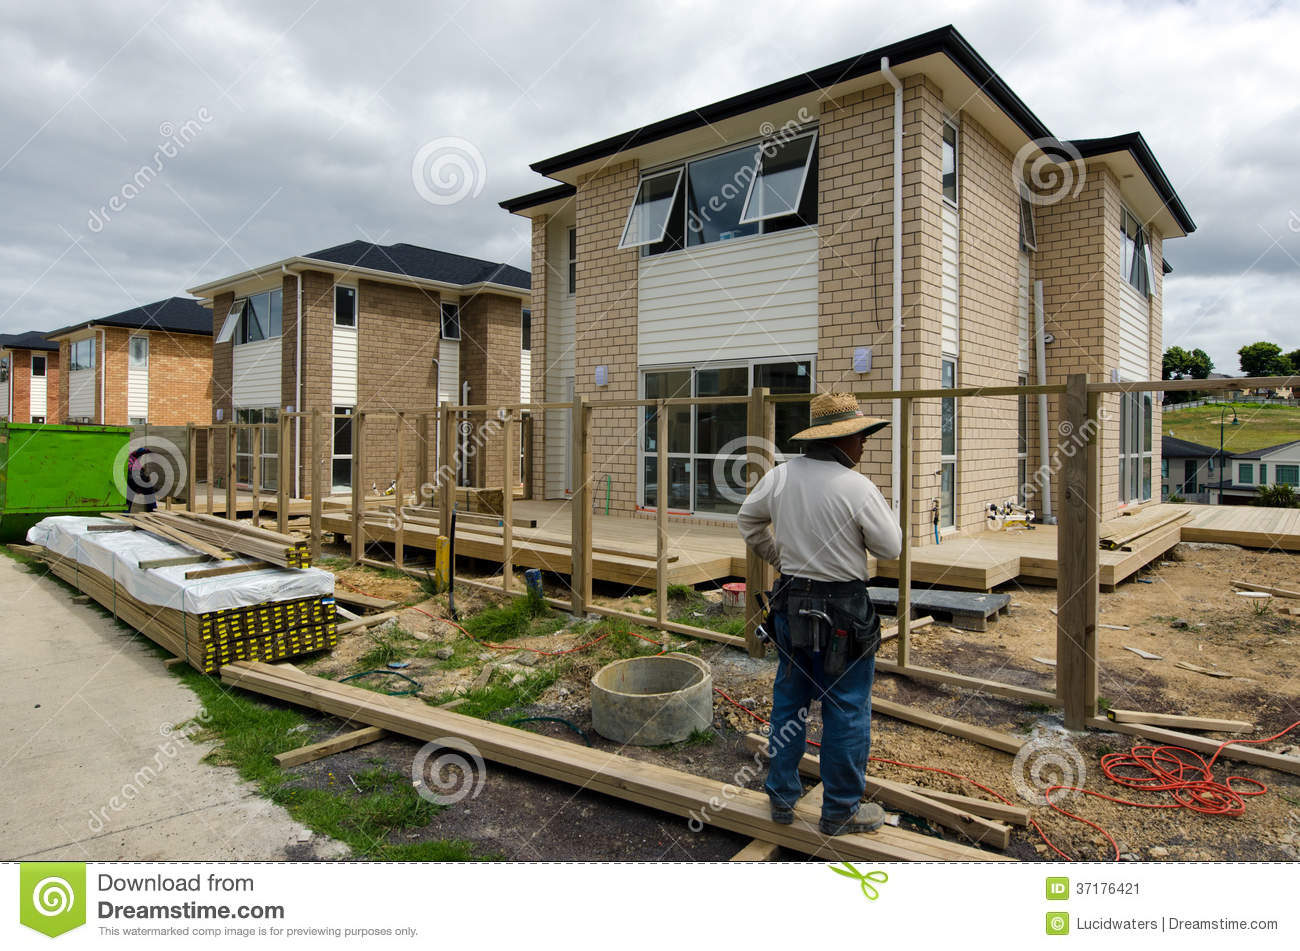 New zealand housing property and real estate market for Home building sites